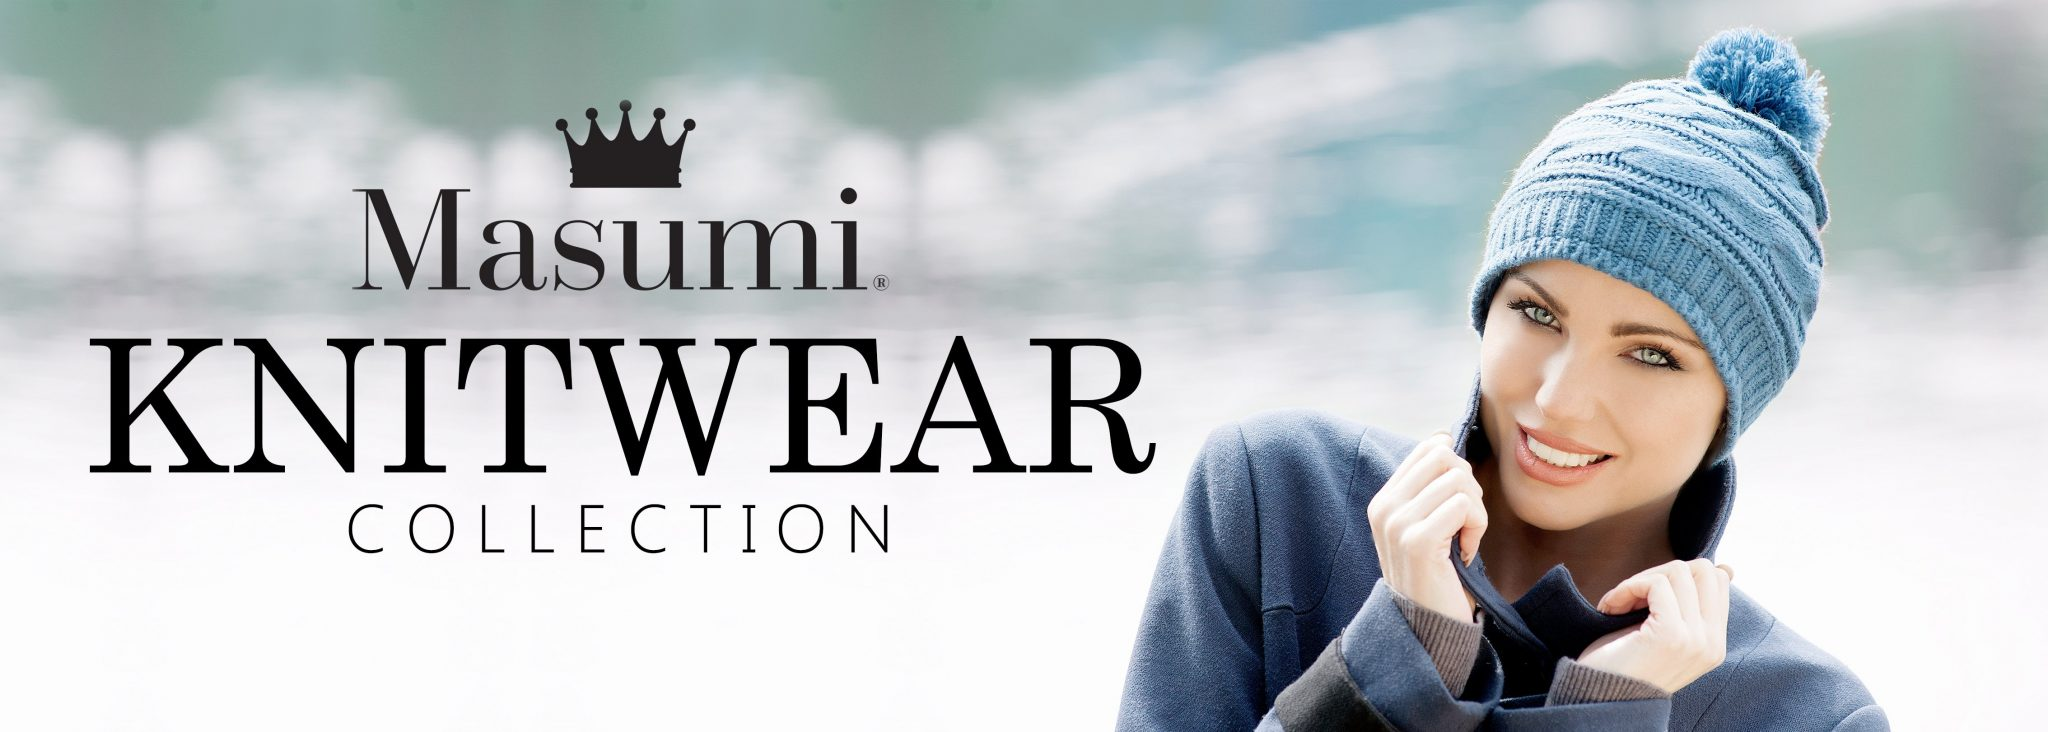 Masumi headwear knitwear collection banner